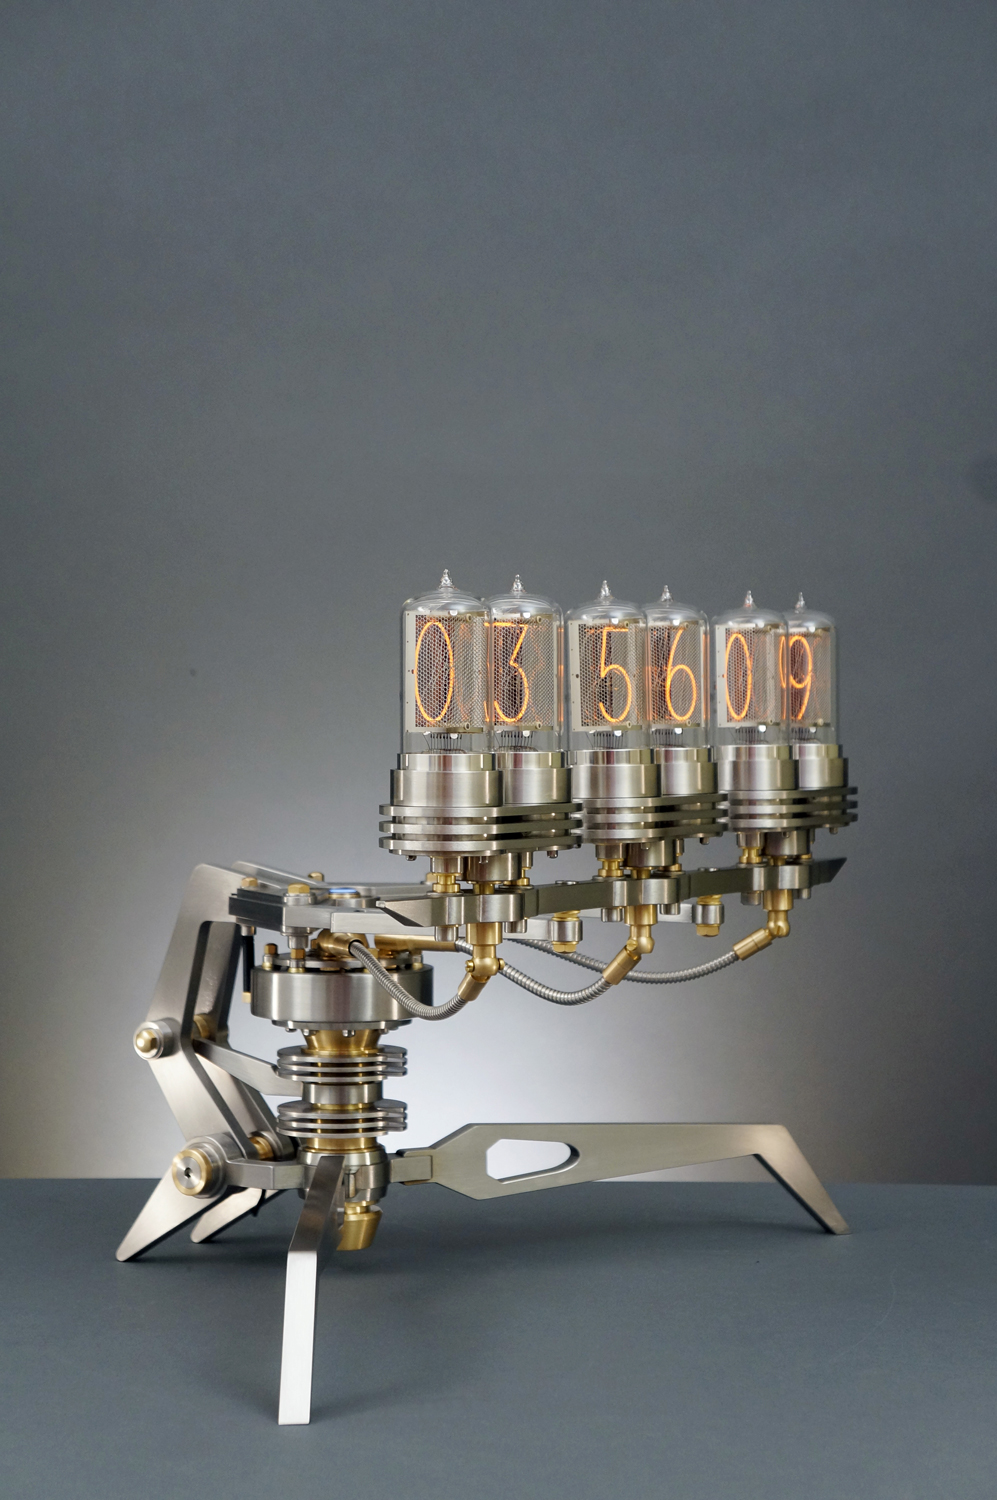 Nixie Machine III: a third and final Nixie Machine by Frank Buchwald, exclusively at the M.A.D.Gallery